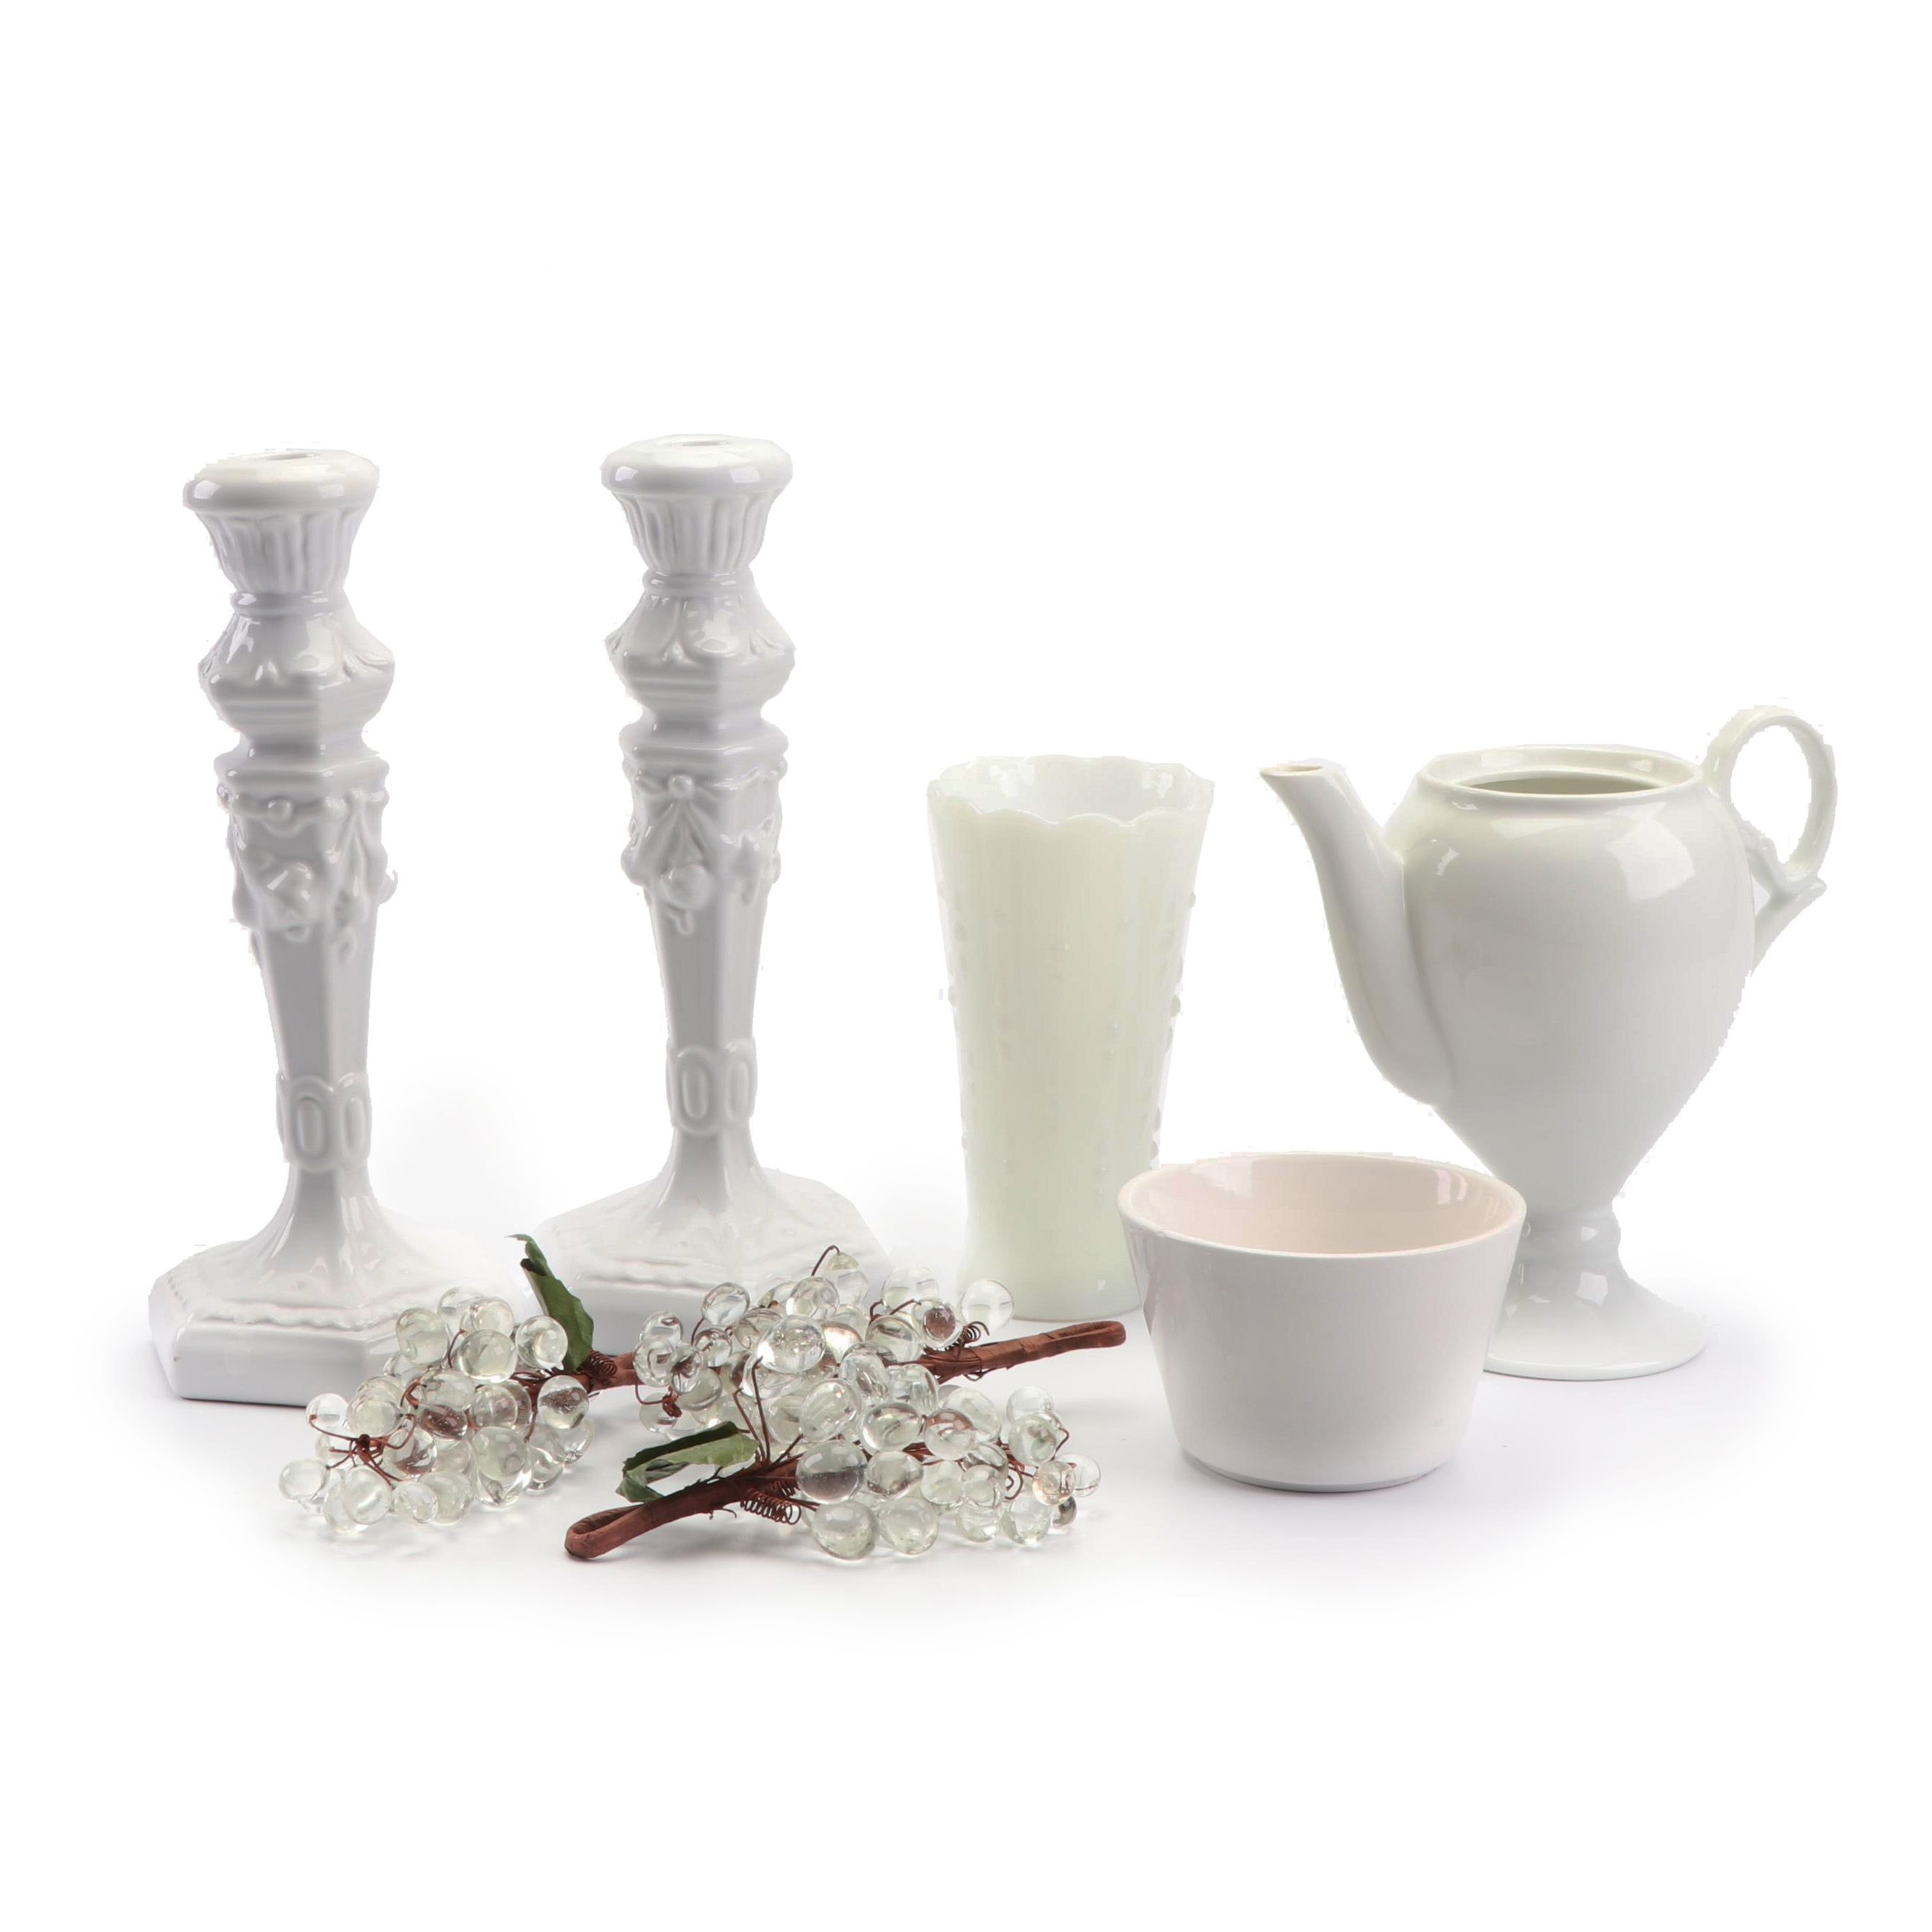 Rosanna Ceramic Candlesticks with Vases and Grape Clusters